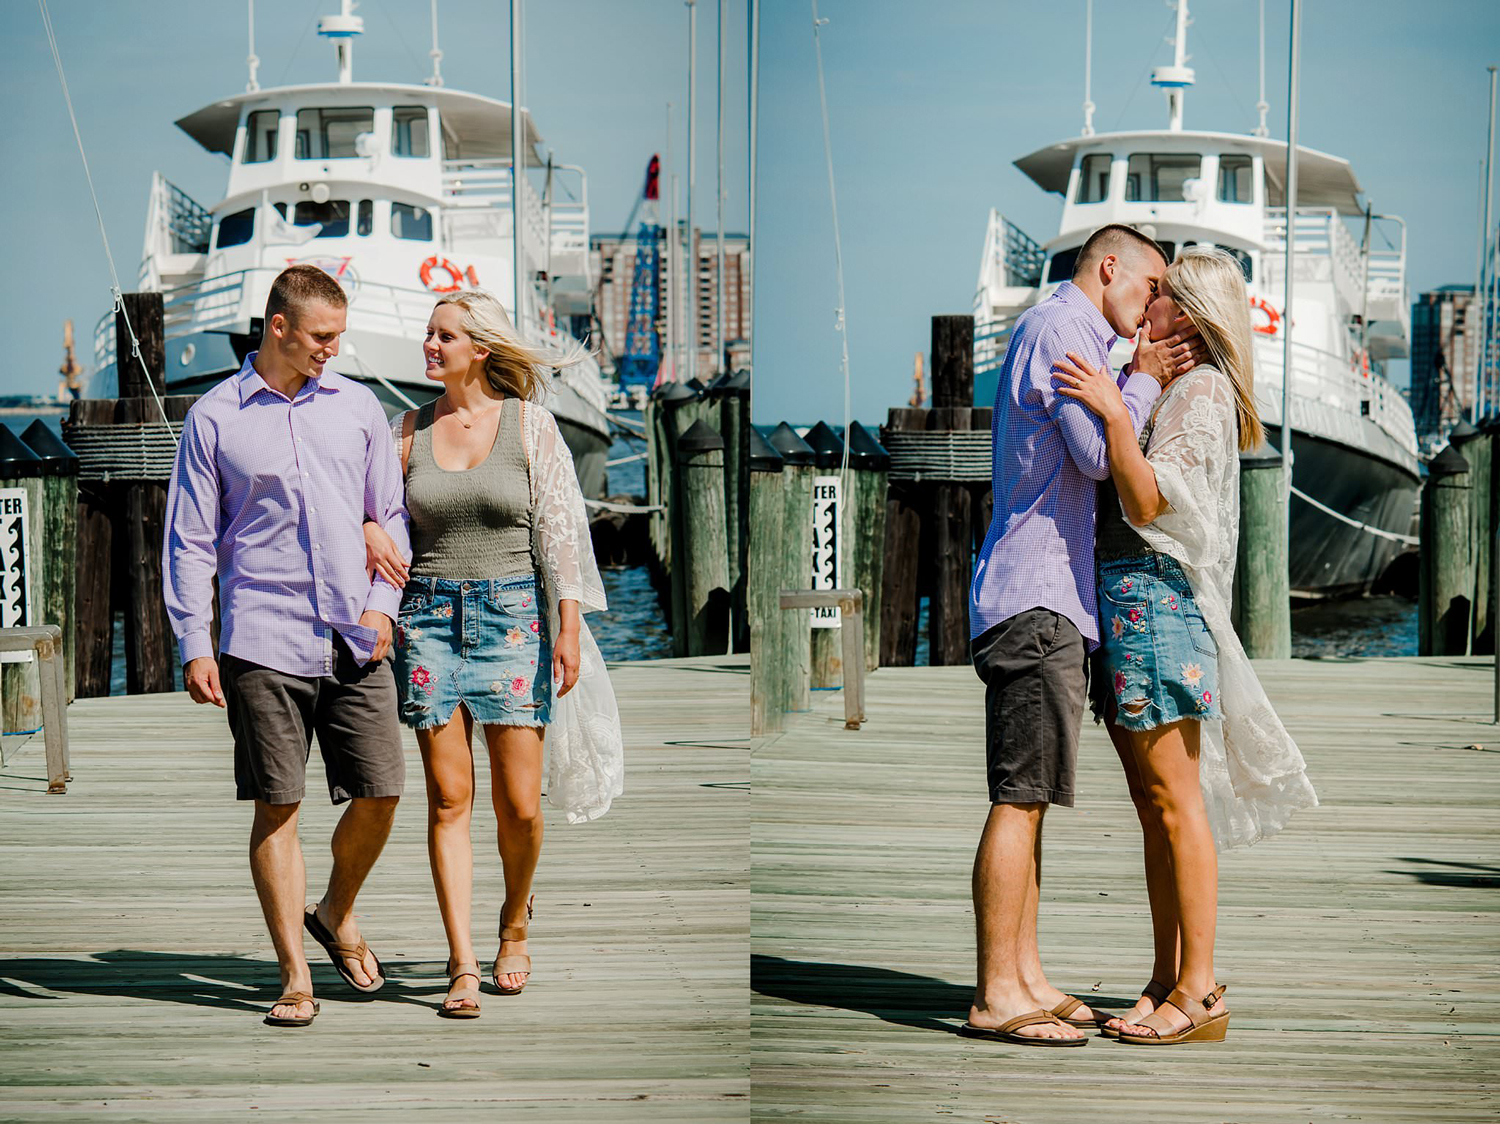 norfolk-engagement-photographer-melissa-bliss-photography.jpg